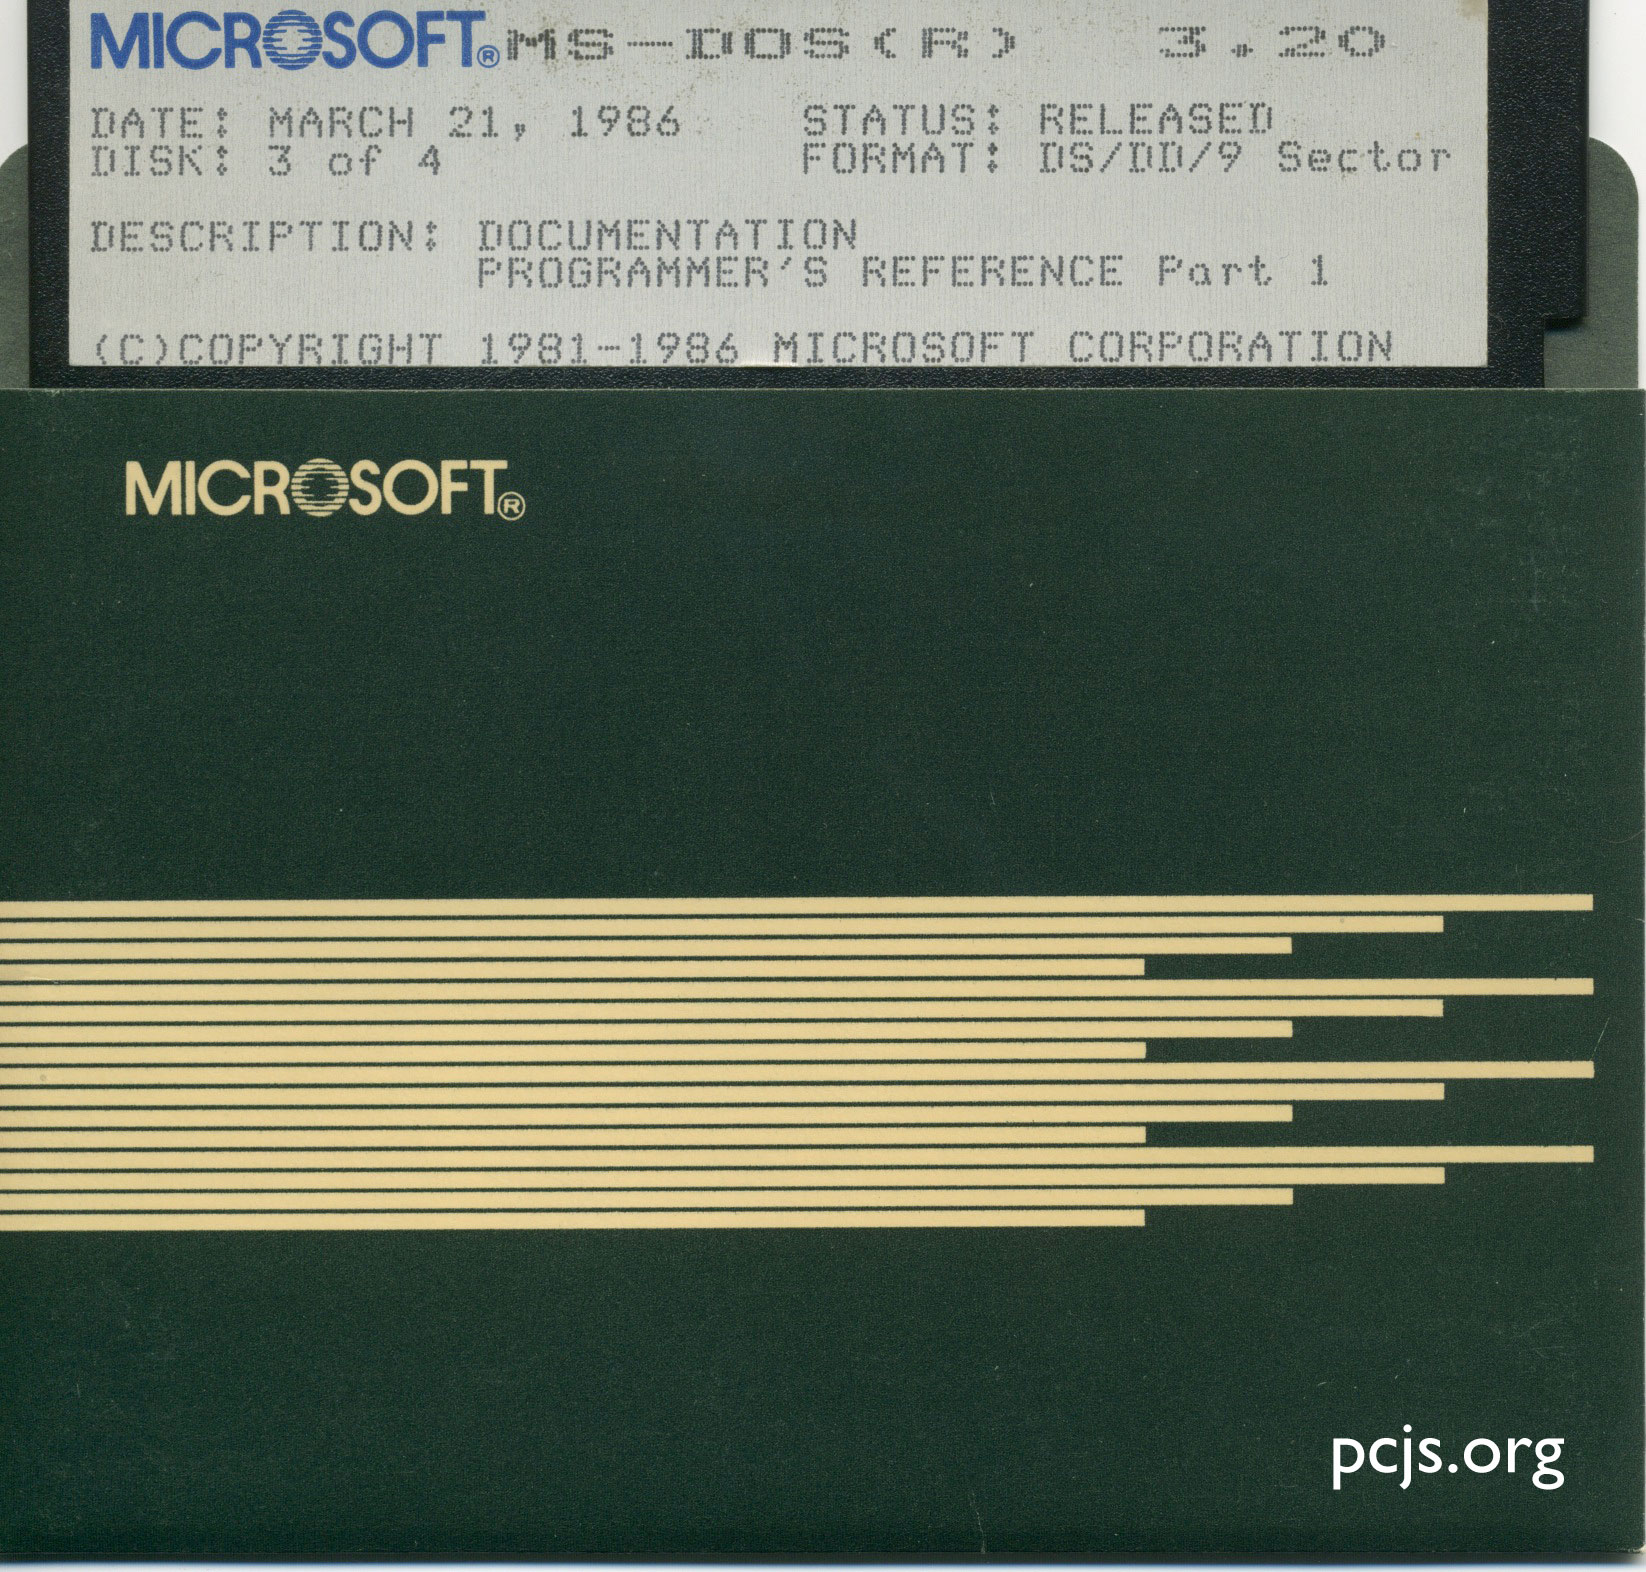 MS-DOS 3.20 Programmer's Reference